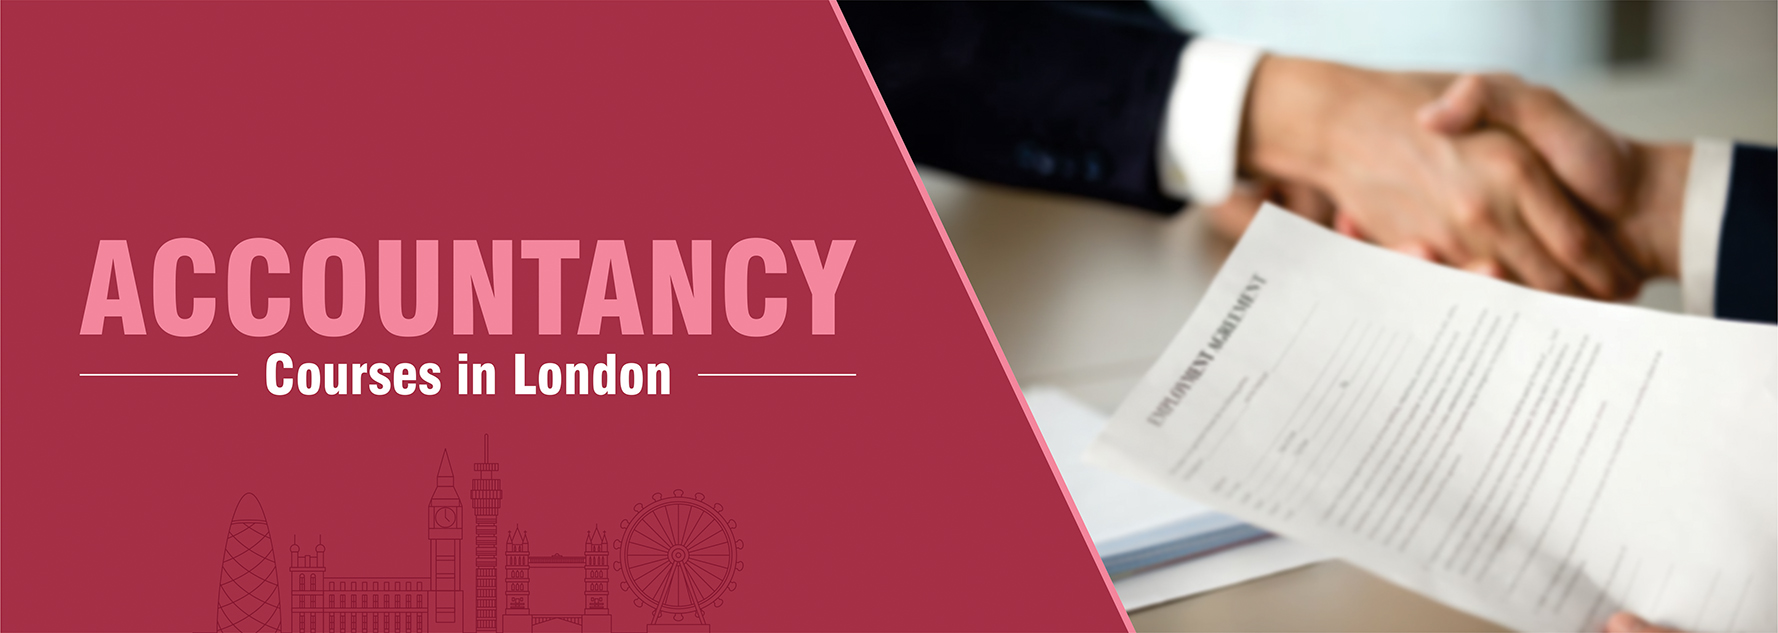 accountancy-courses-in-london